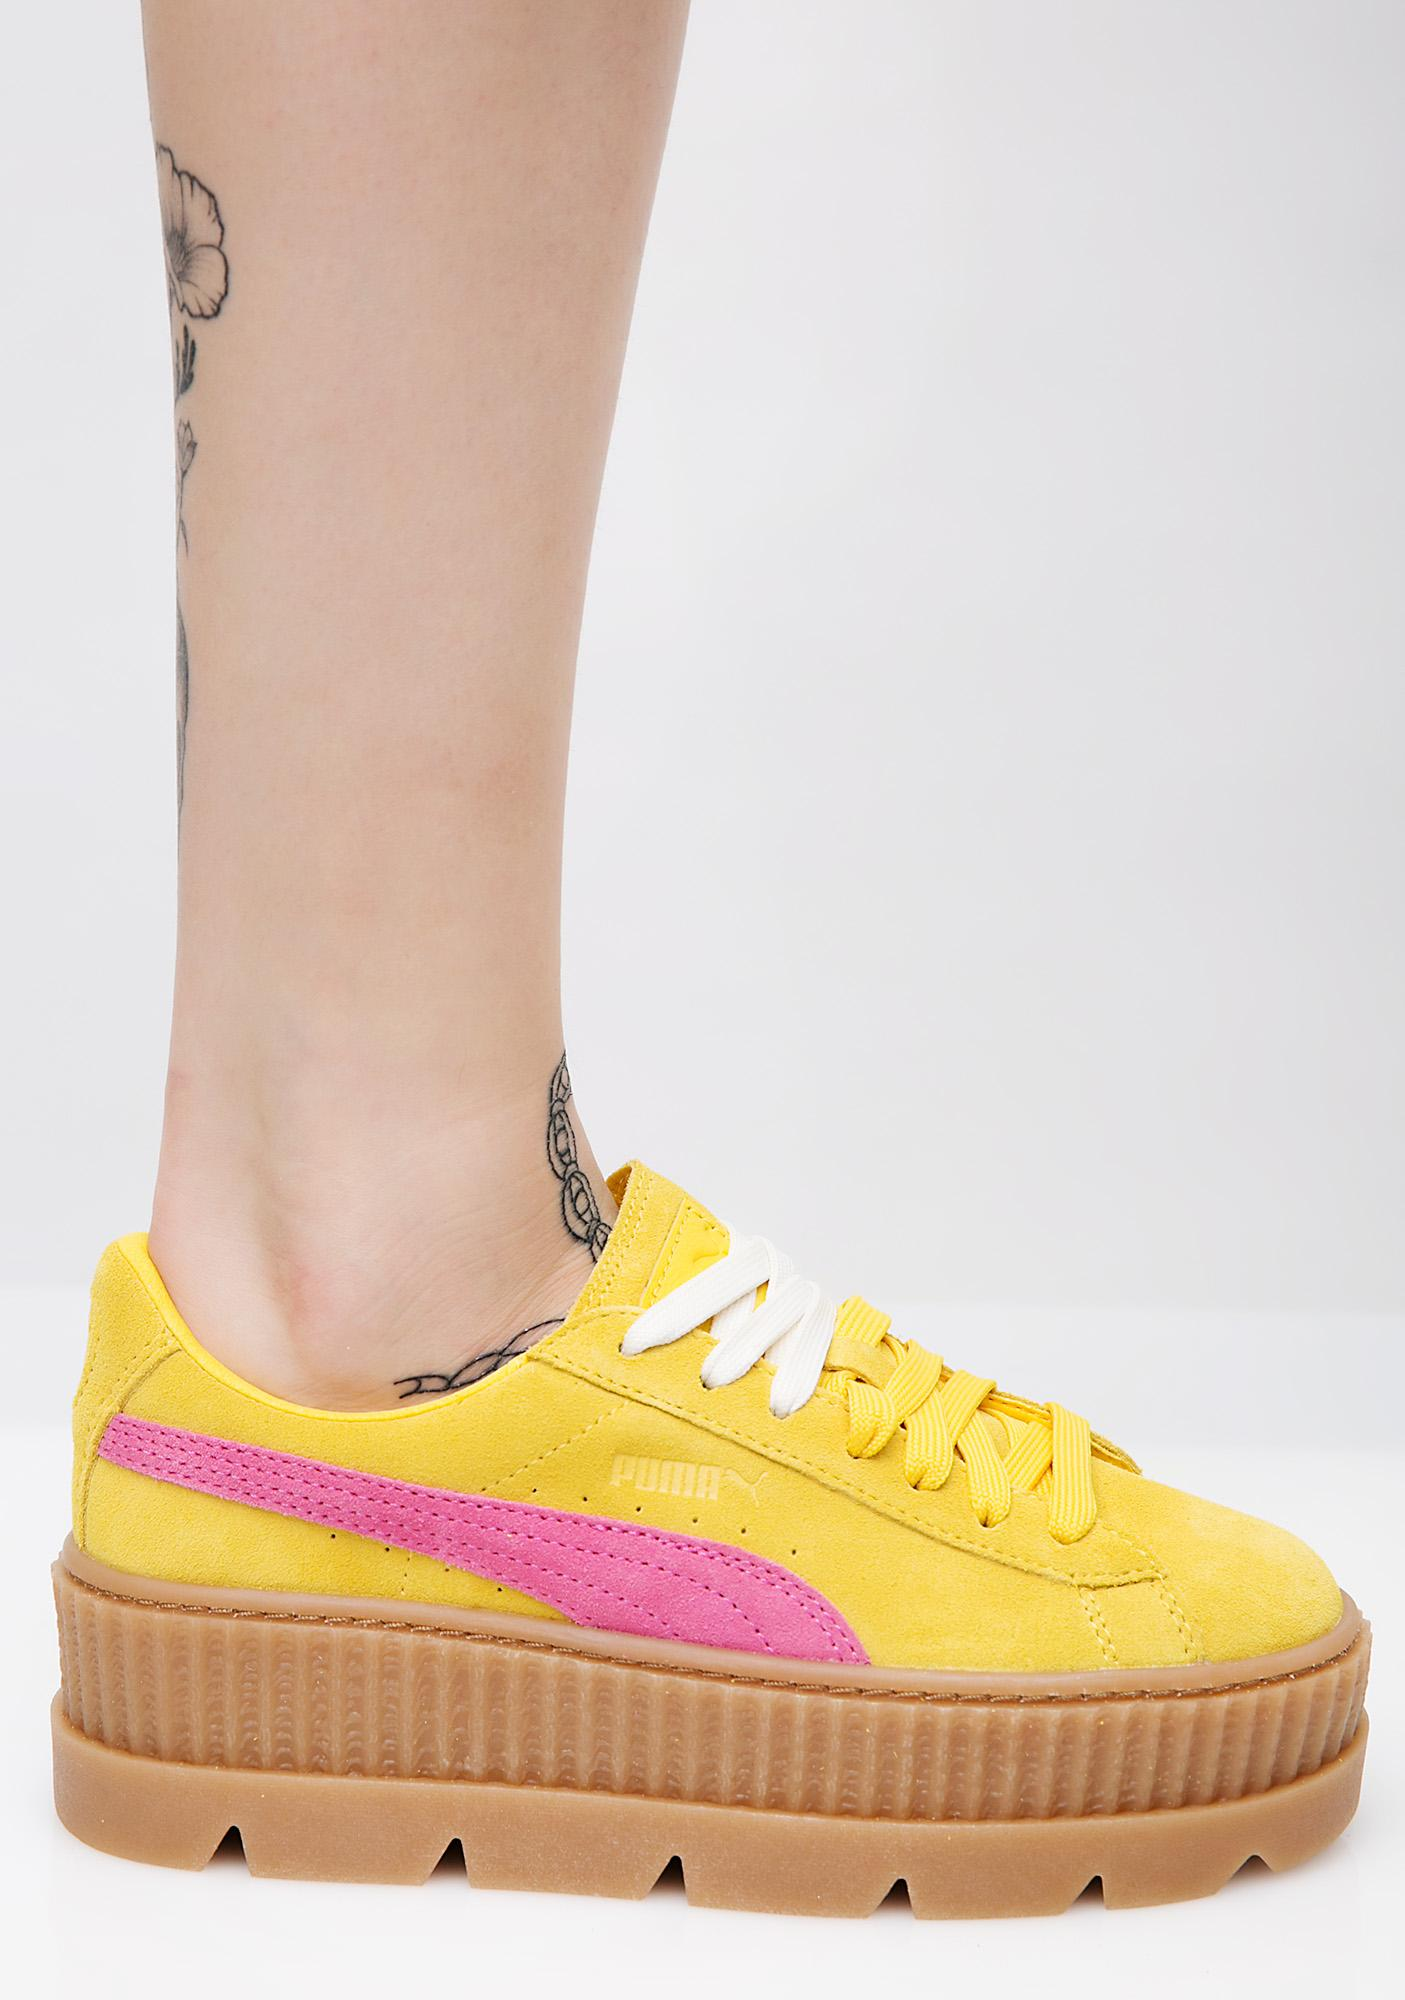 puma creepers clear